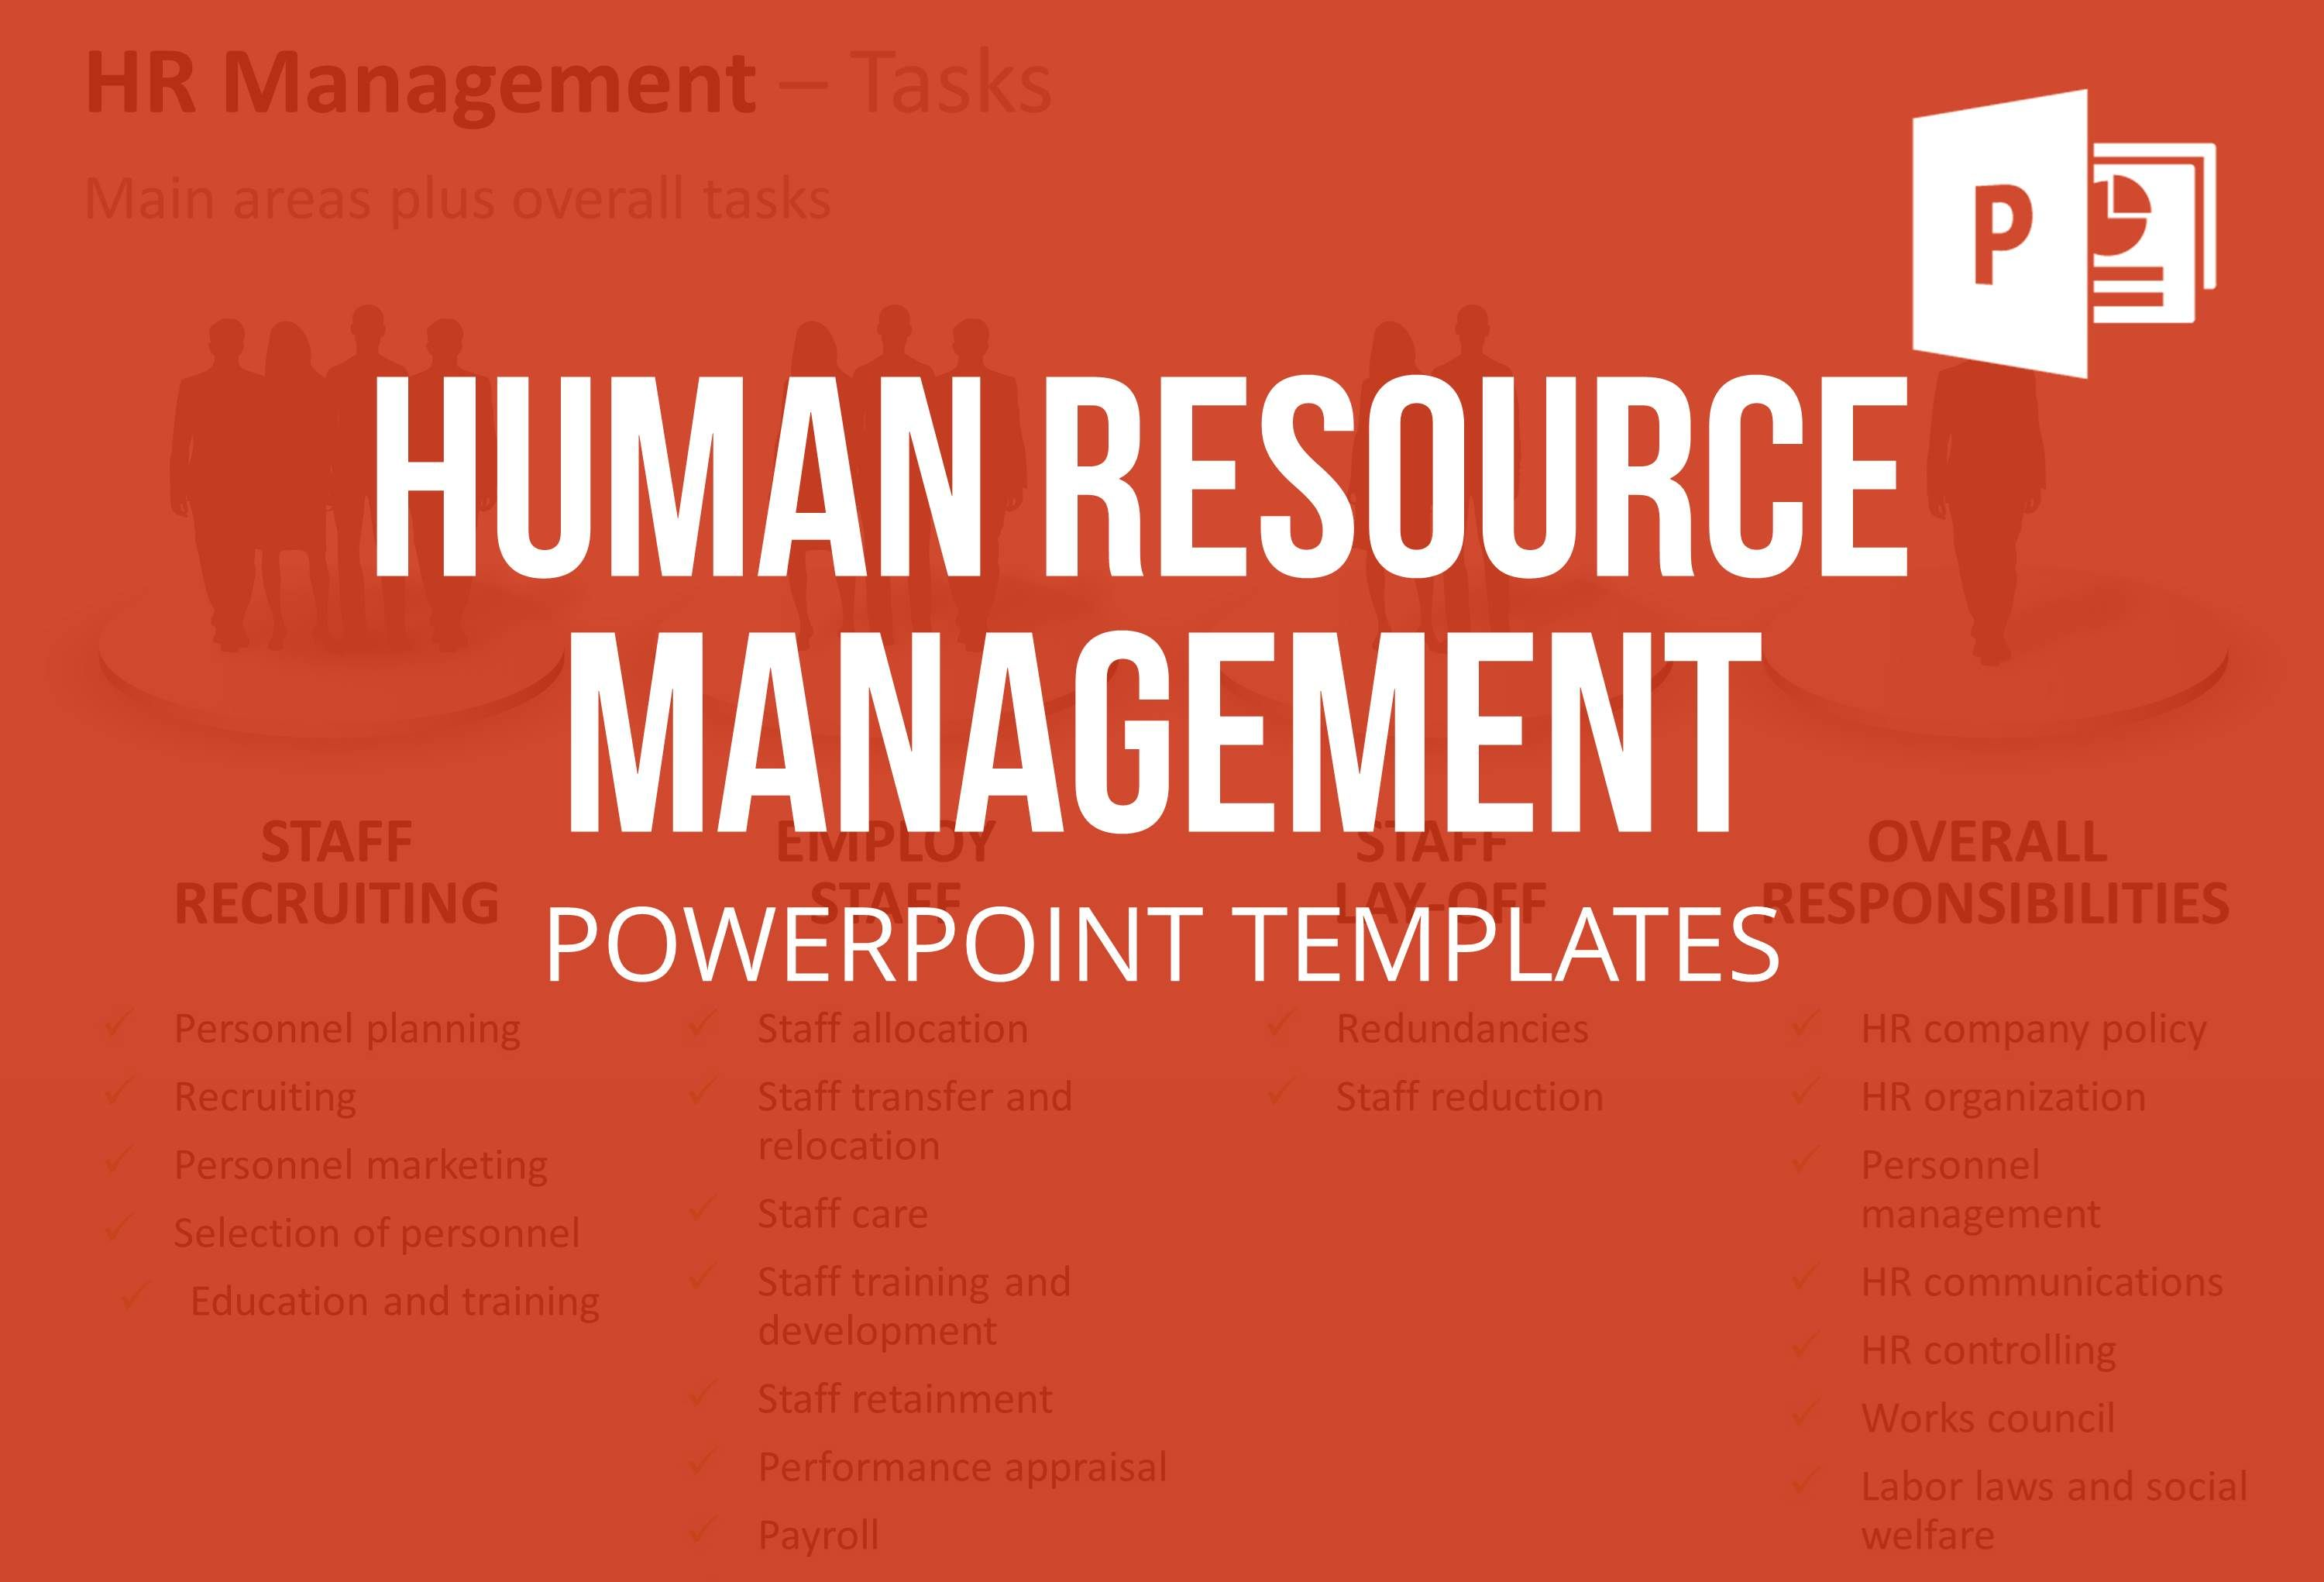 The Human Resource Management Powerpoint Template Set Includes A Collecti Human Resource Management Templates Human Resource Management Student Human Resources